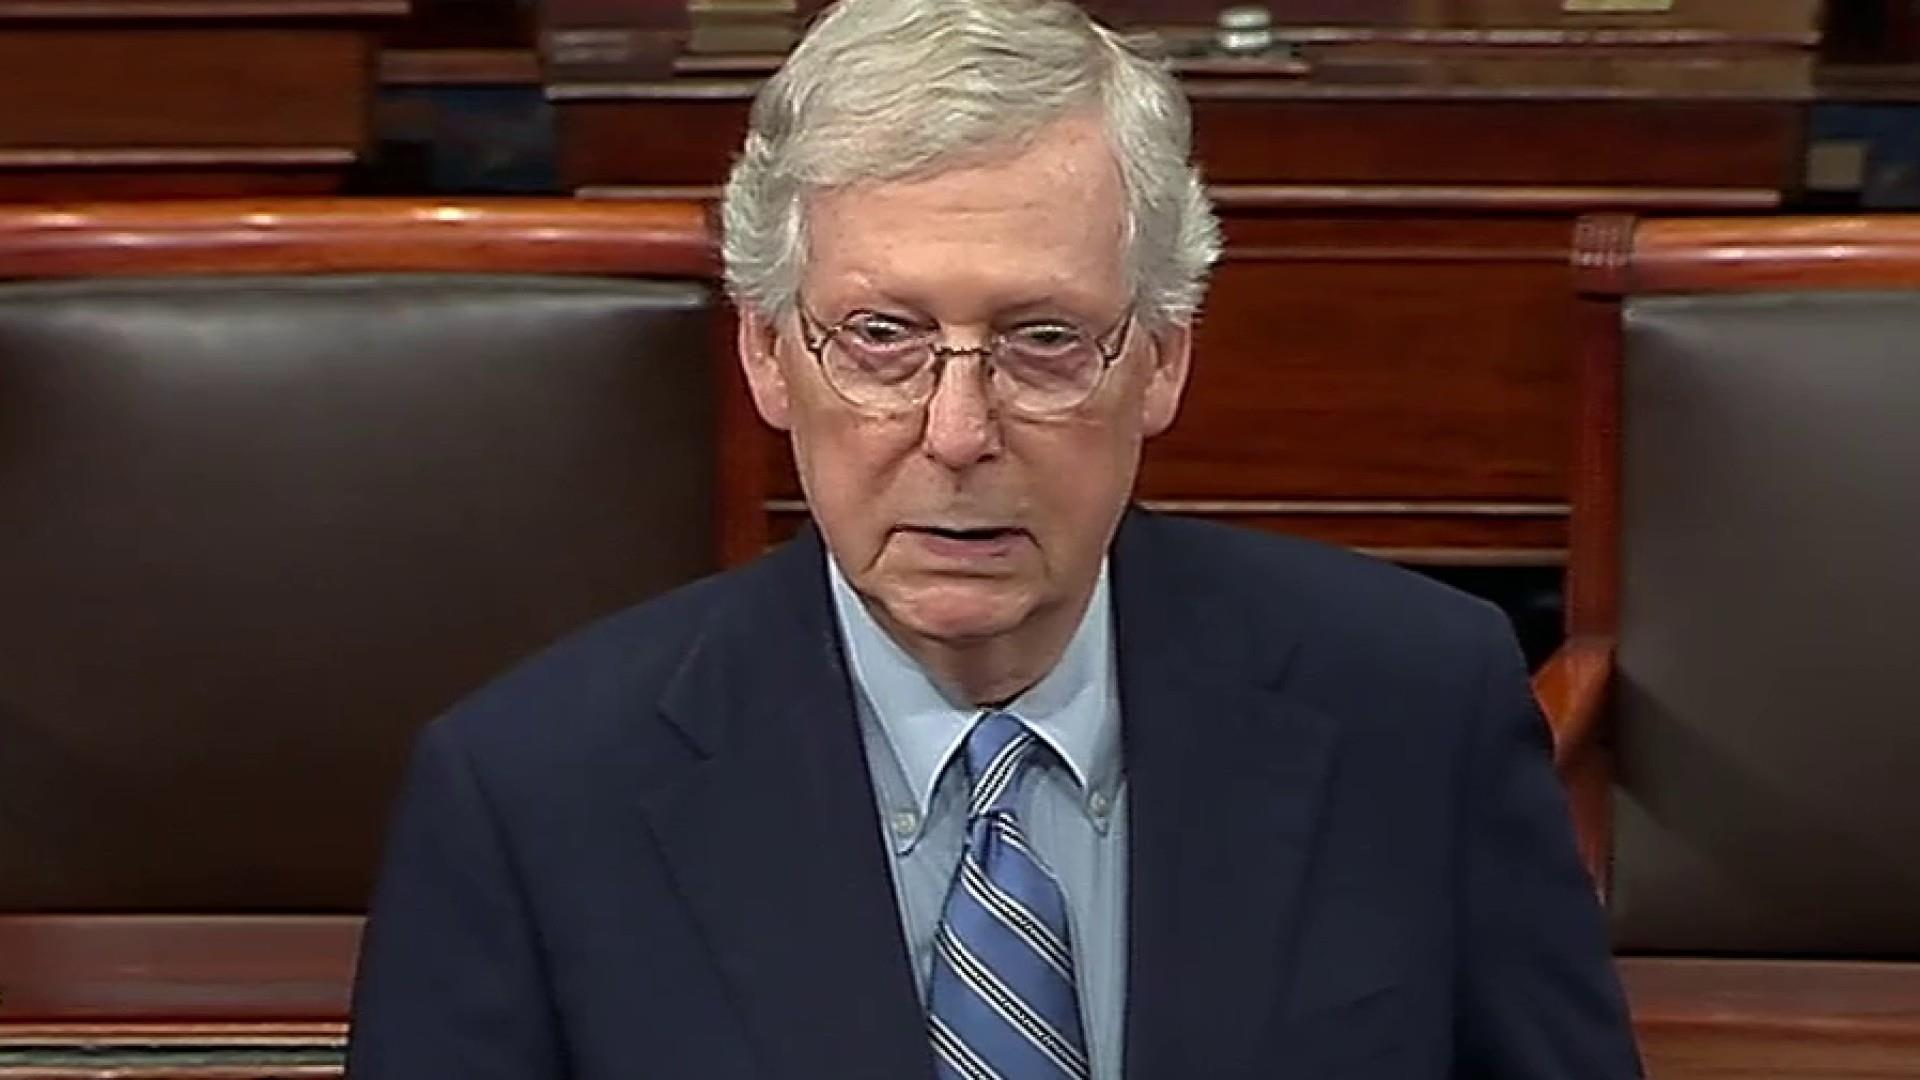 McConnell mocked by 'Moscow Mitch' jab as new allegations surface